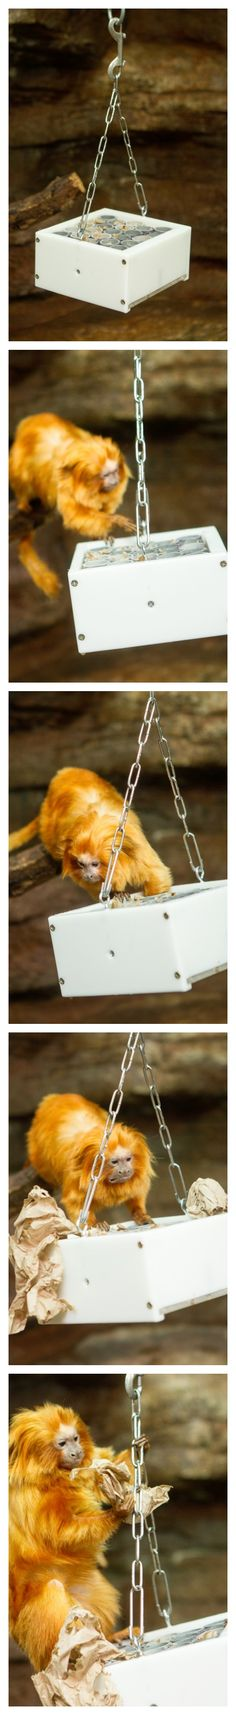 Honeycomb PVC Feeder for Golden-Lion Tamarin at Saint Louis Zoo.